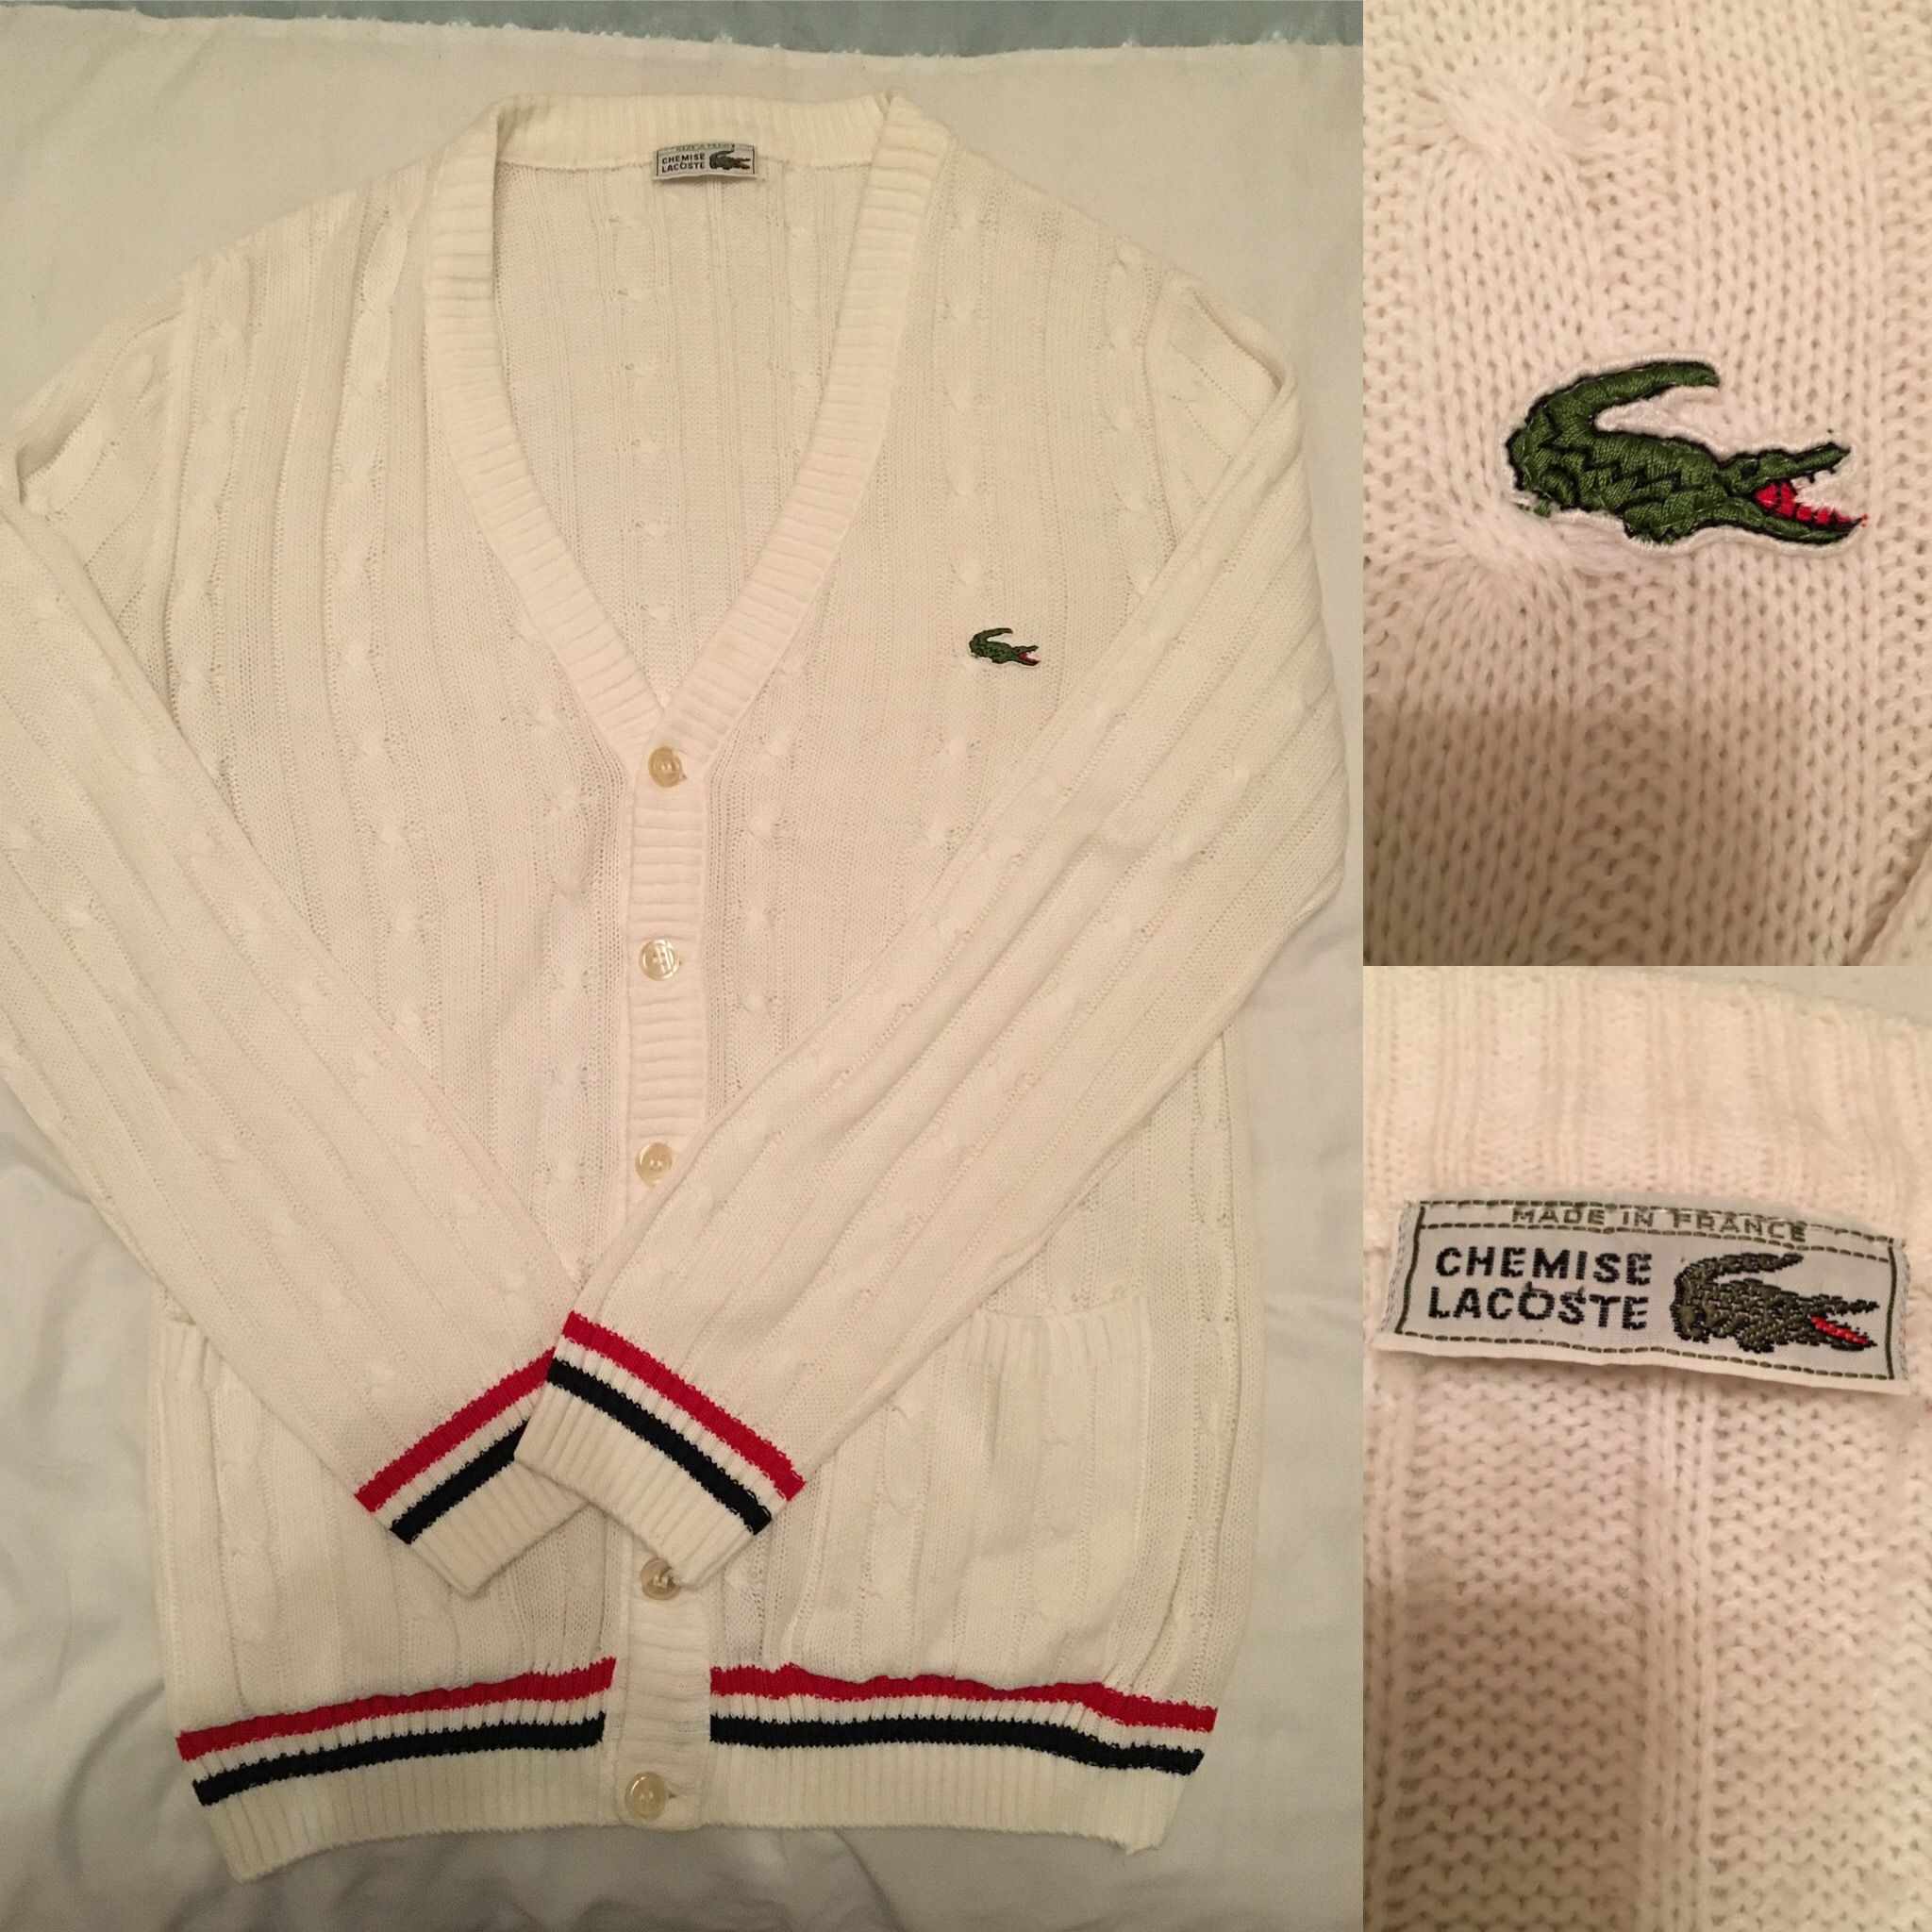 ef10201da Chemise Lacoste warm up Knit 1980's | Men in 2019 | Vintage tennis ...